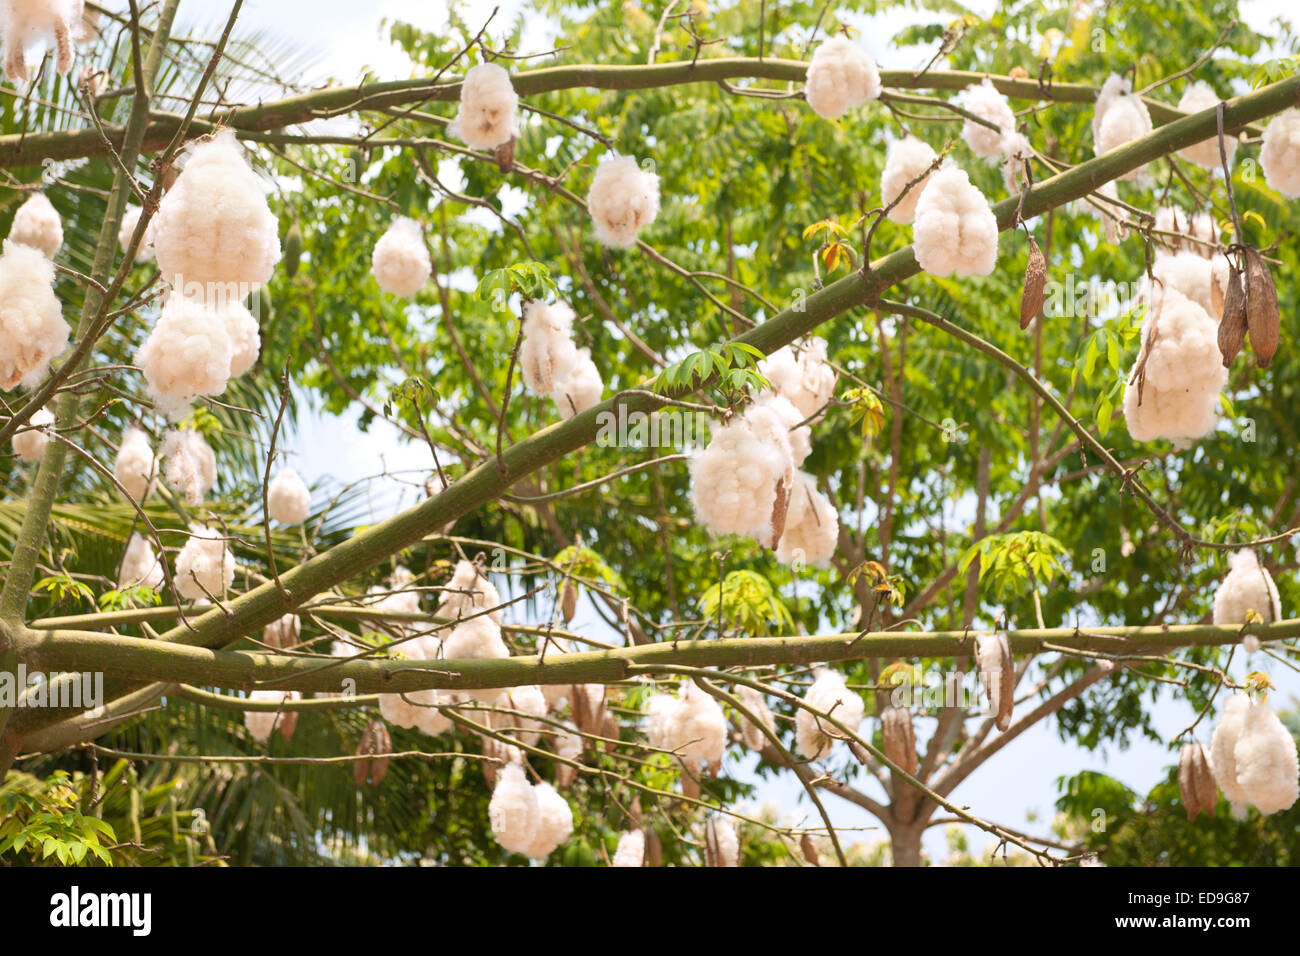 Kapok Tree Stock Photos & Kapok Tree Stock Images - Alamy